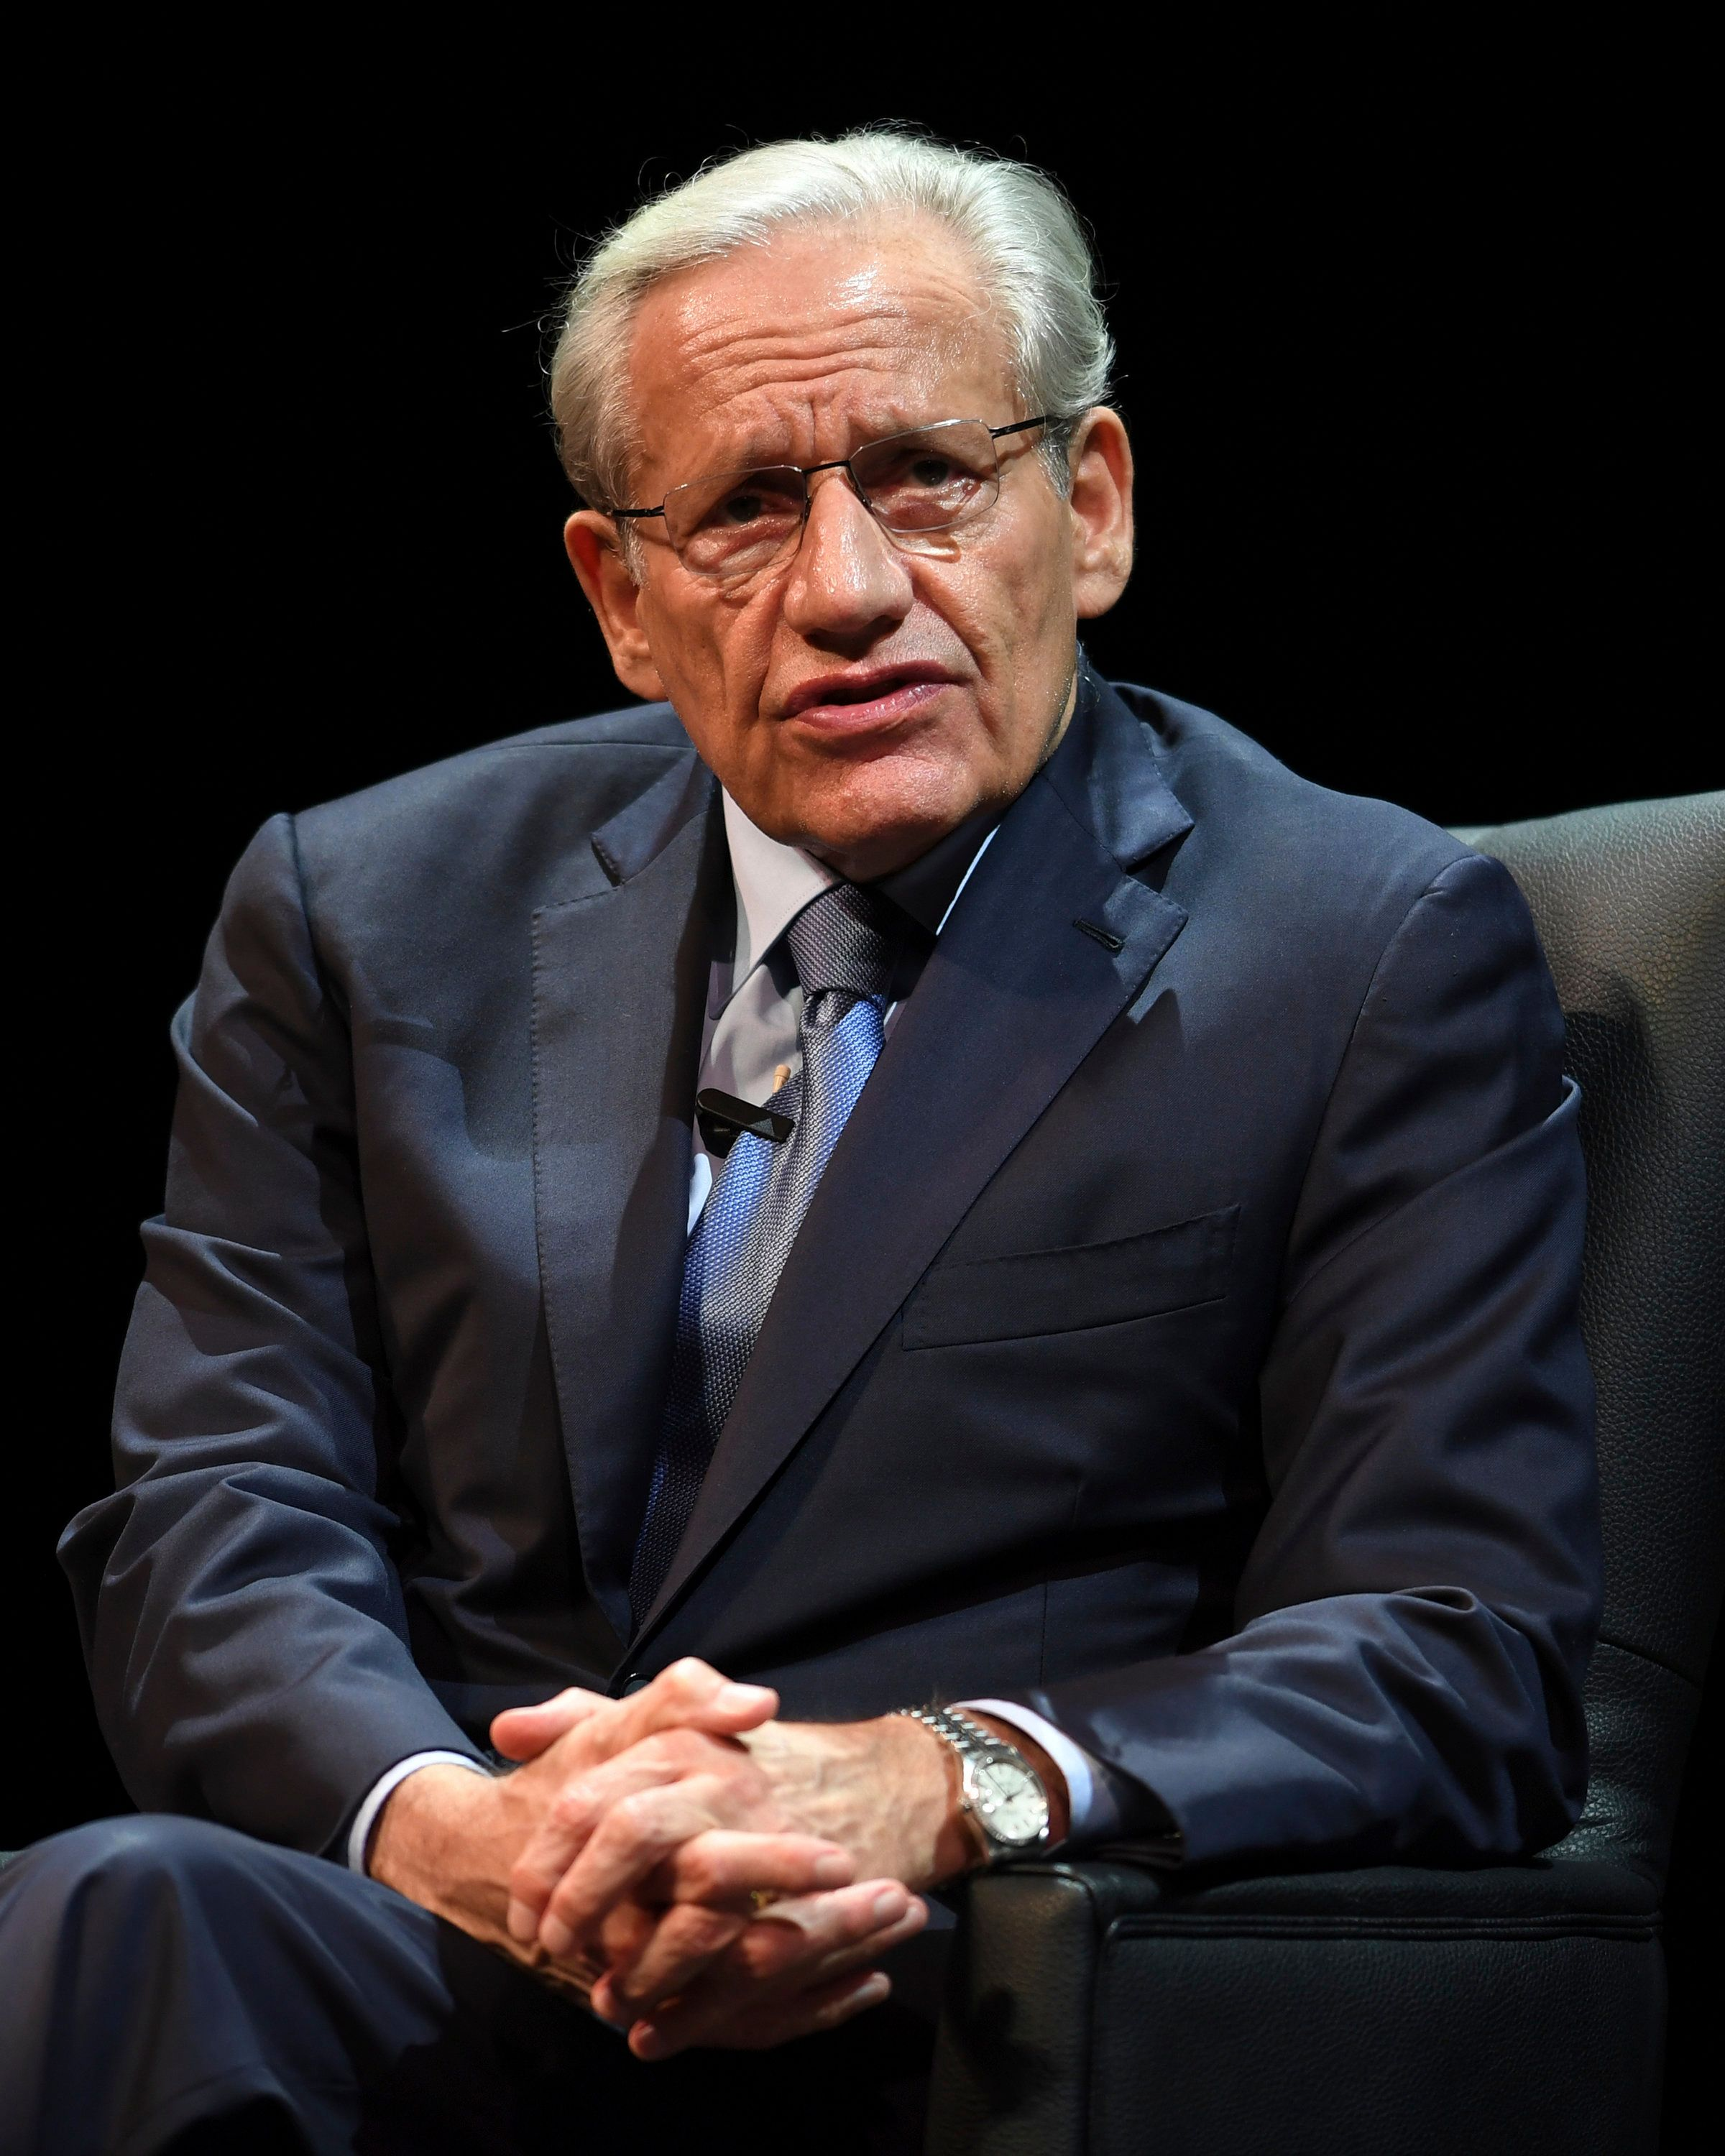 Bob Woodward: The Media Has Become 'Emotionally Unhinged' About Trump